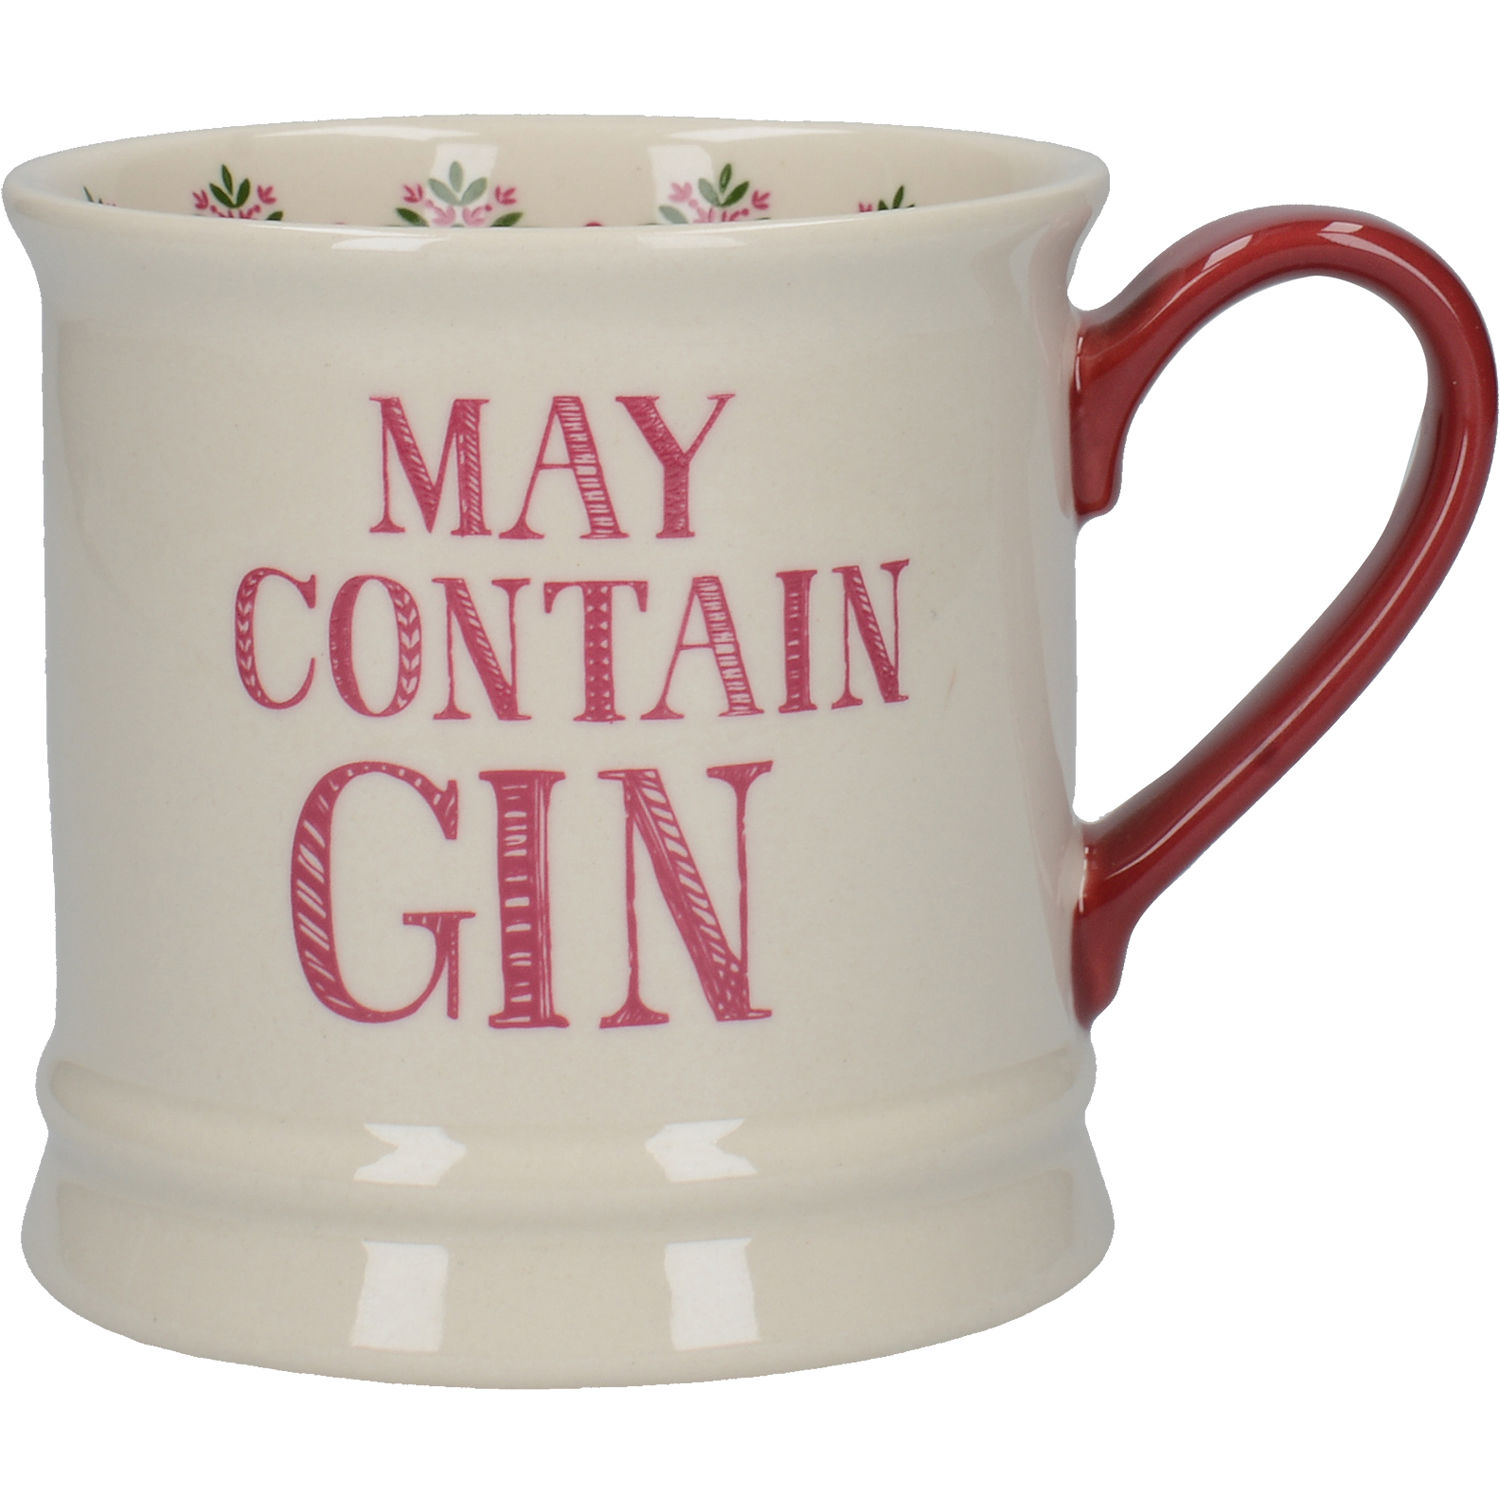 on sale recognized brands best price Creative Tops Stir It Up Mug Celebrate May Contain Gin